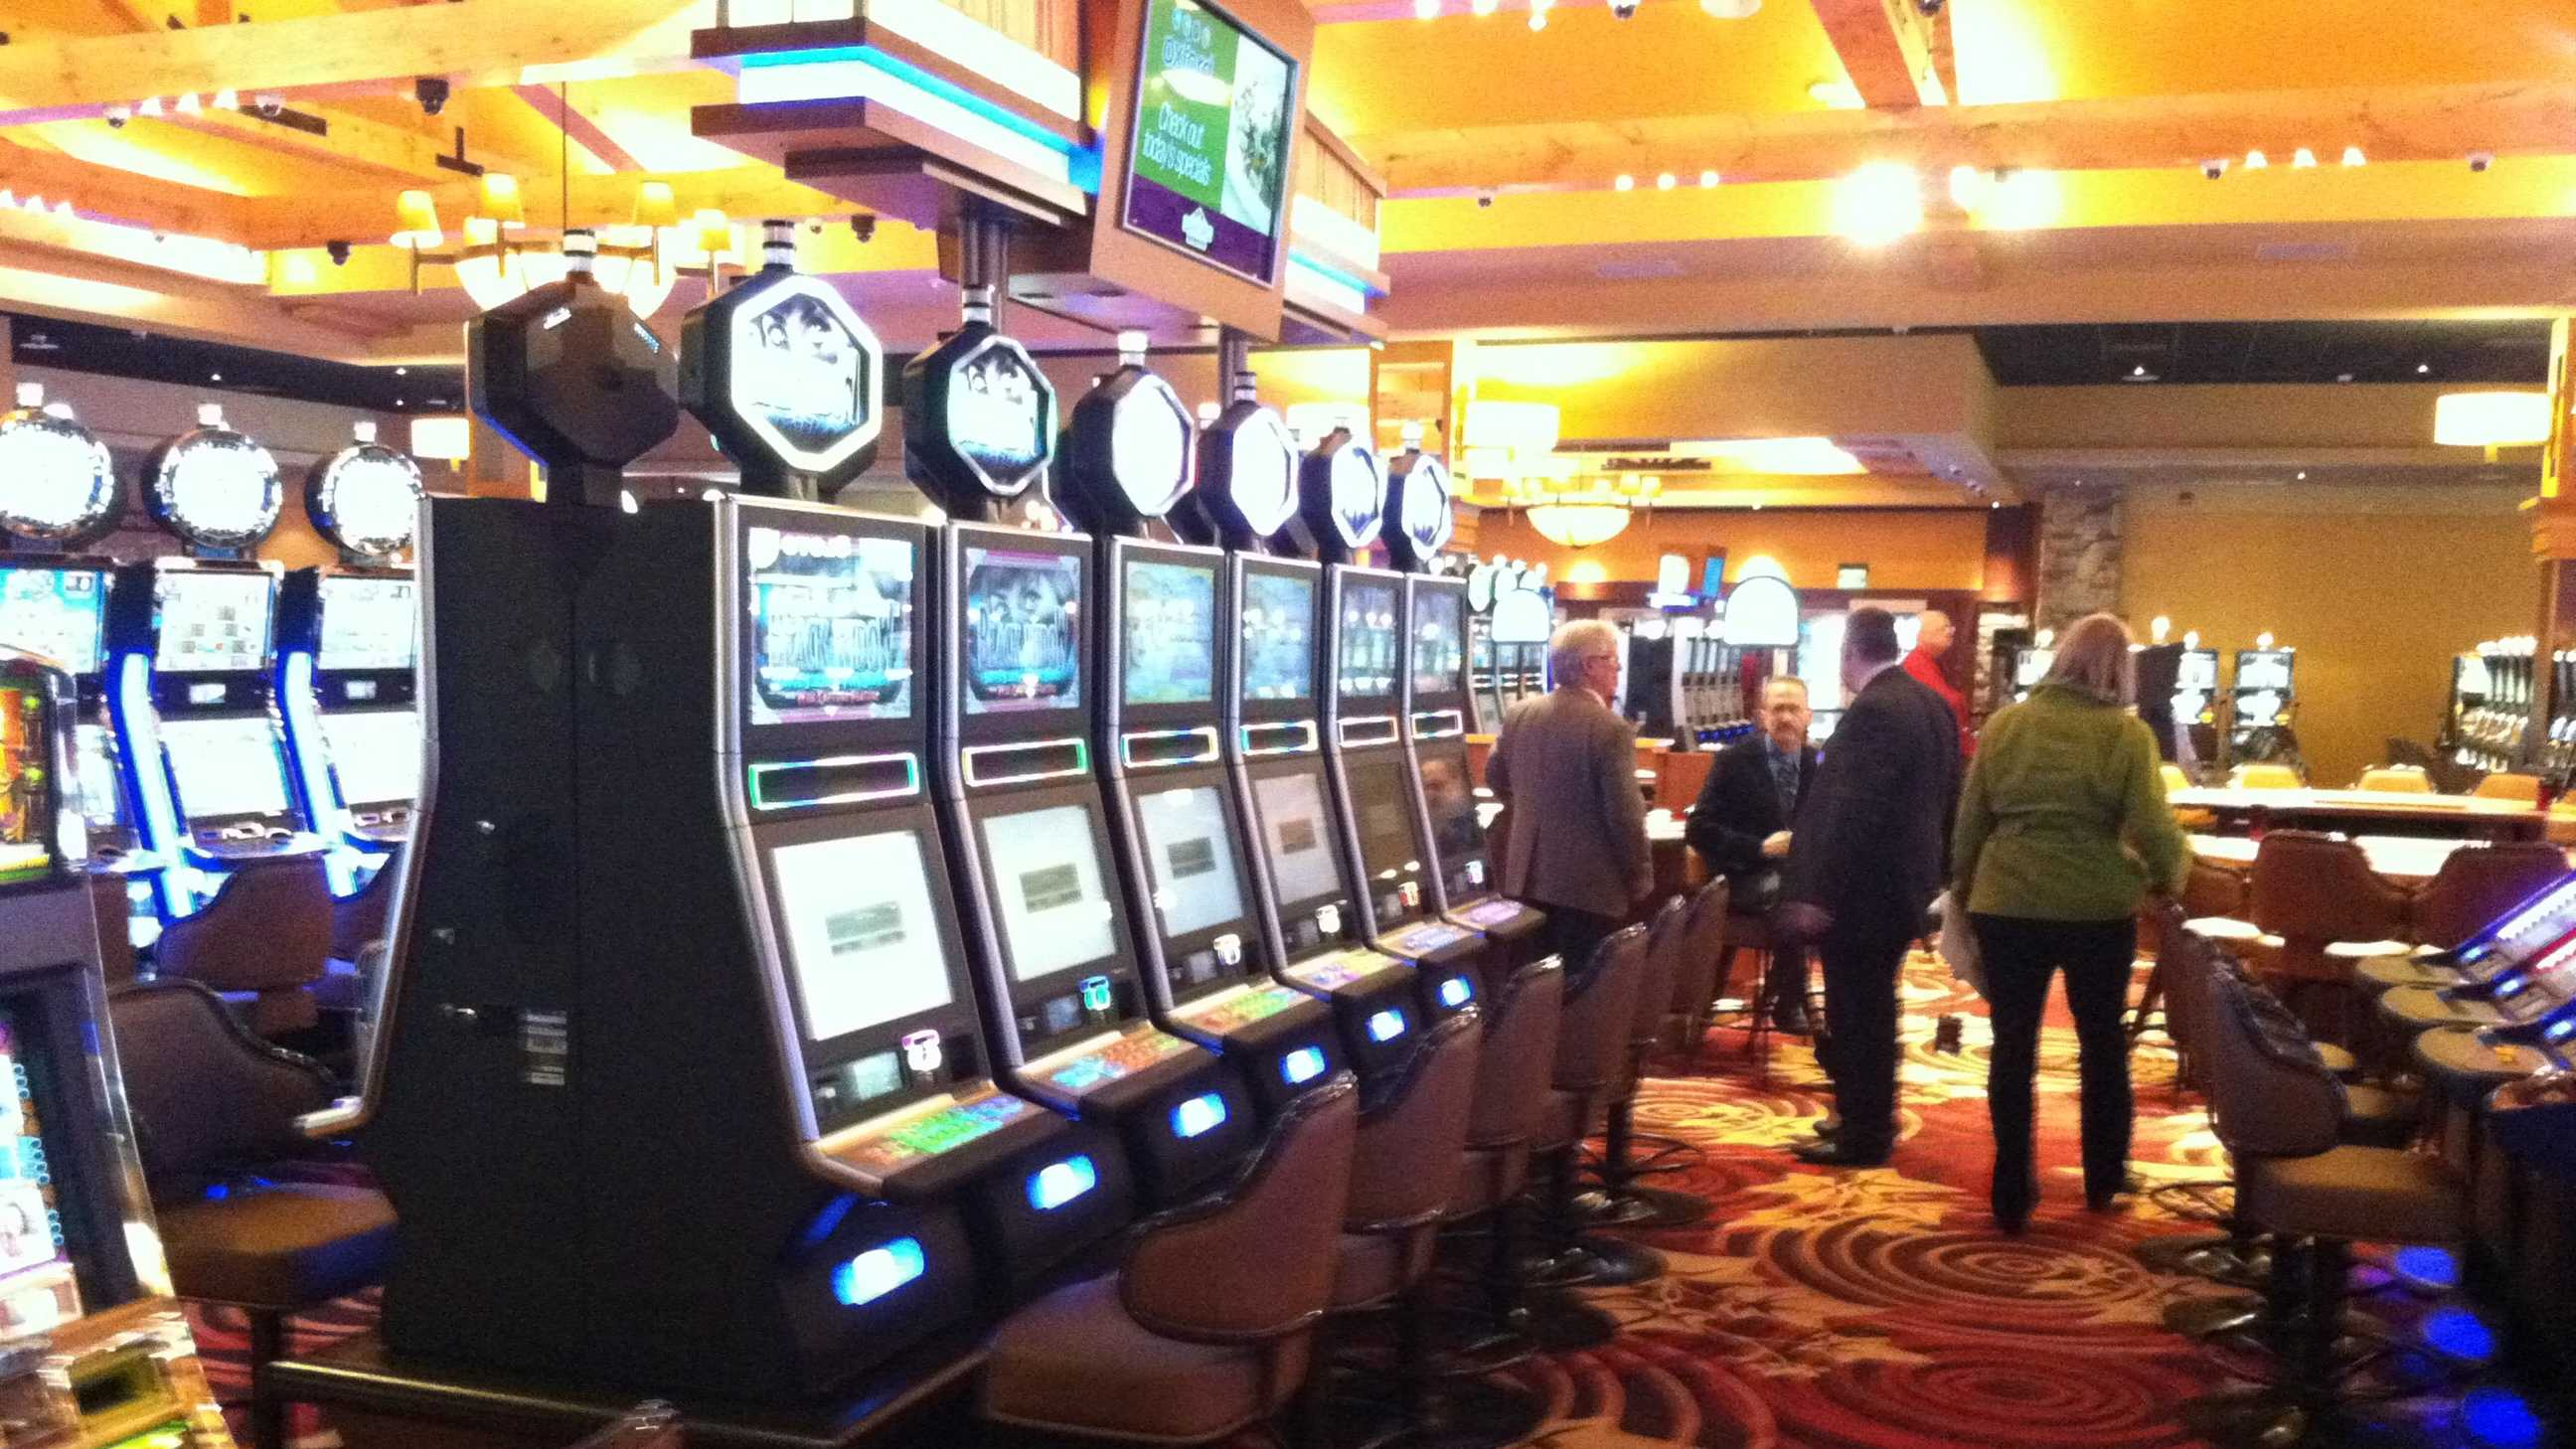 The Oxford Casino gives the state 46 percent of its net slot machine revenue.